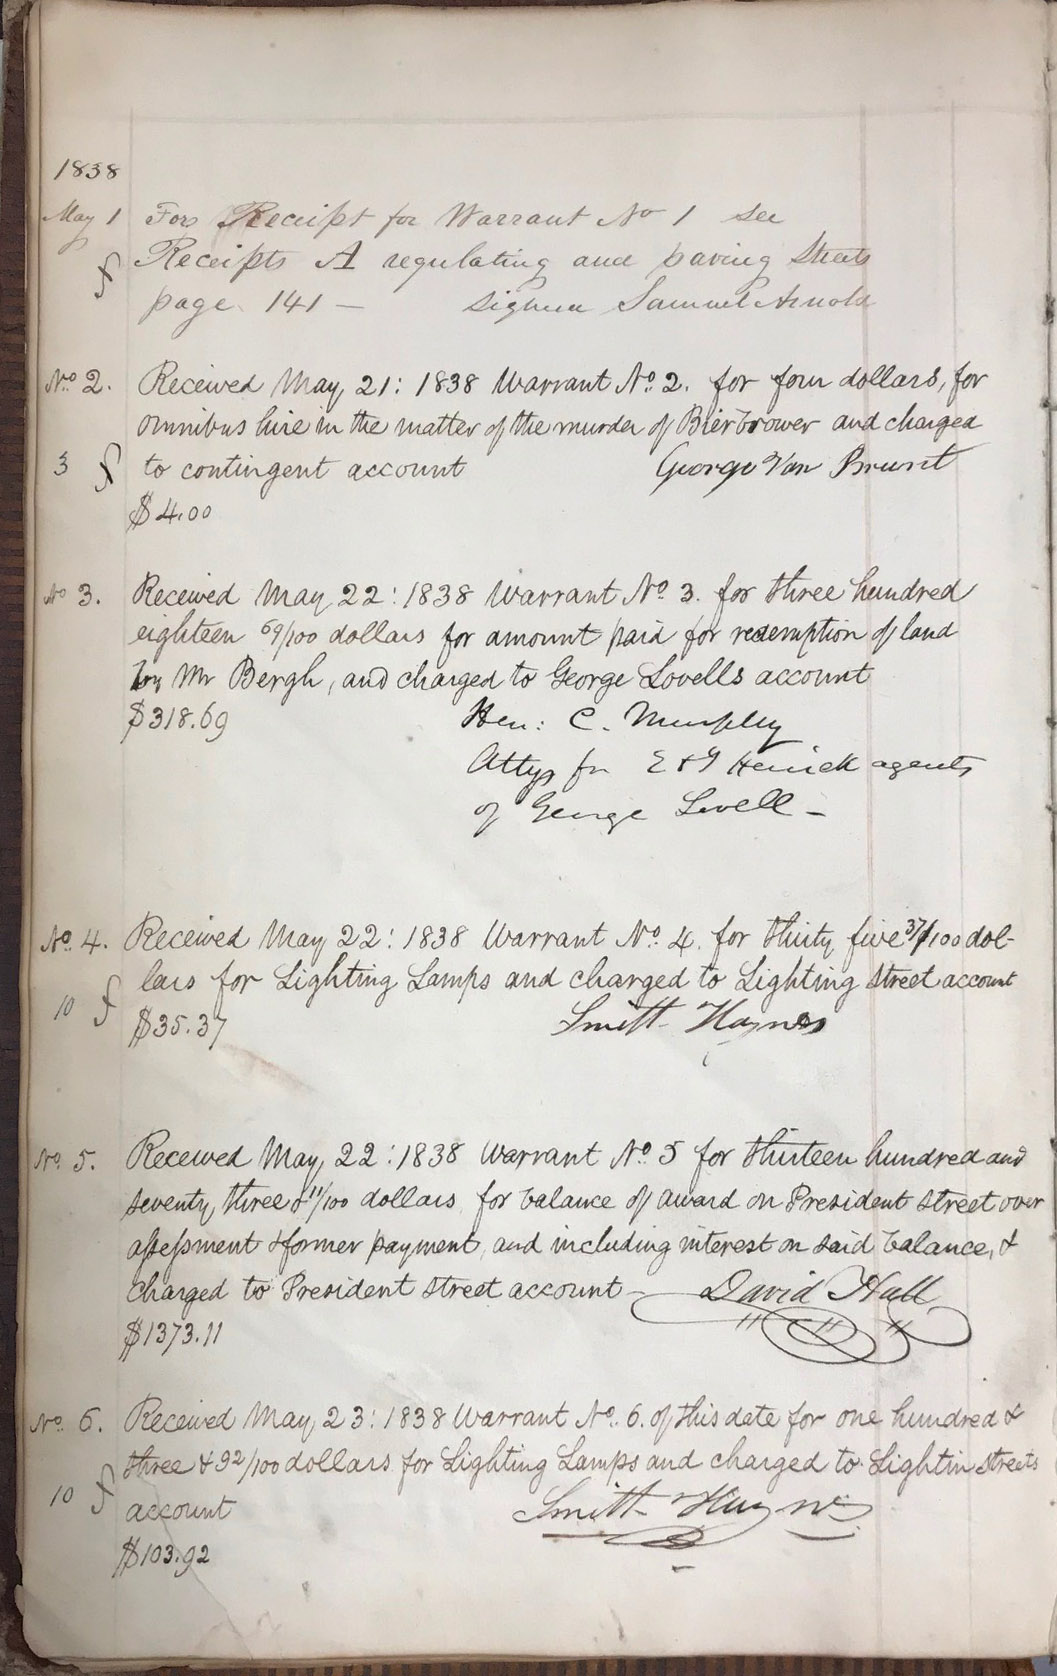 Received May 21: 1838 Warrant No. 2. for four dollars, for omnibus hire in the matter of the murder of Bierbrower and charged to contingent account. -George Von Brunt    $4.00